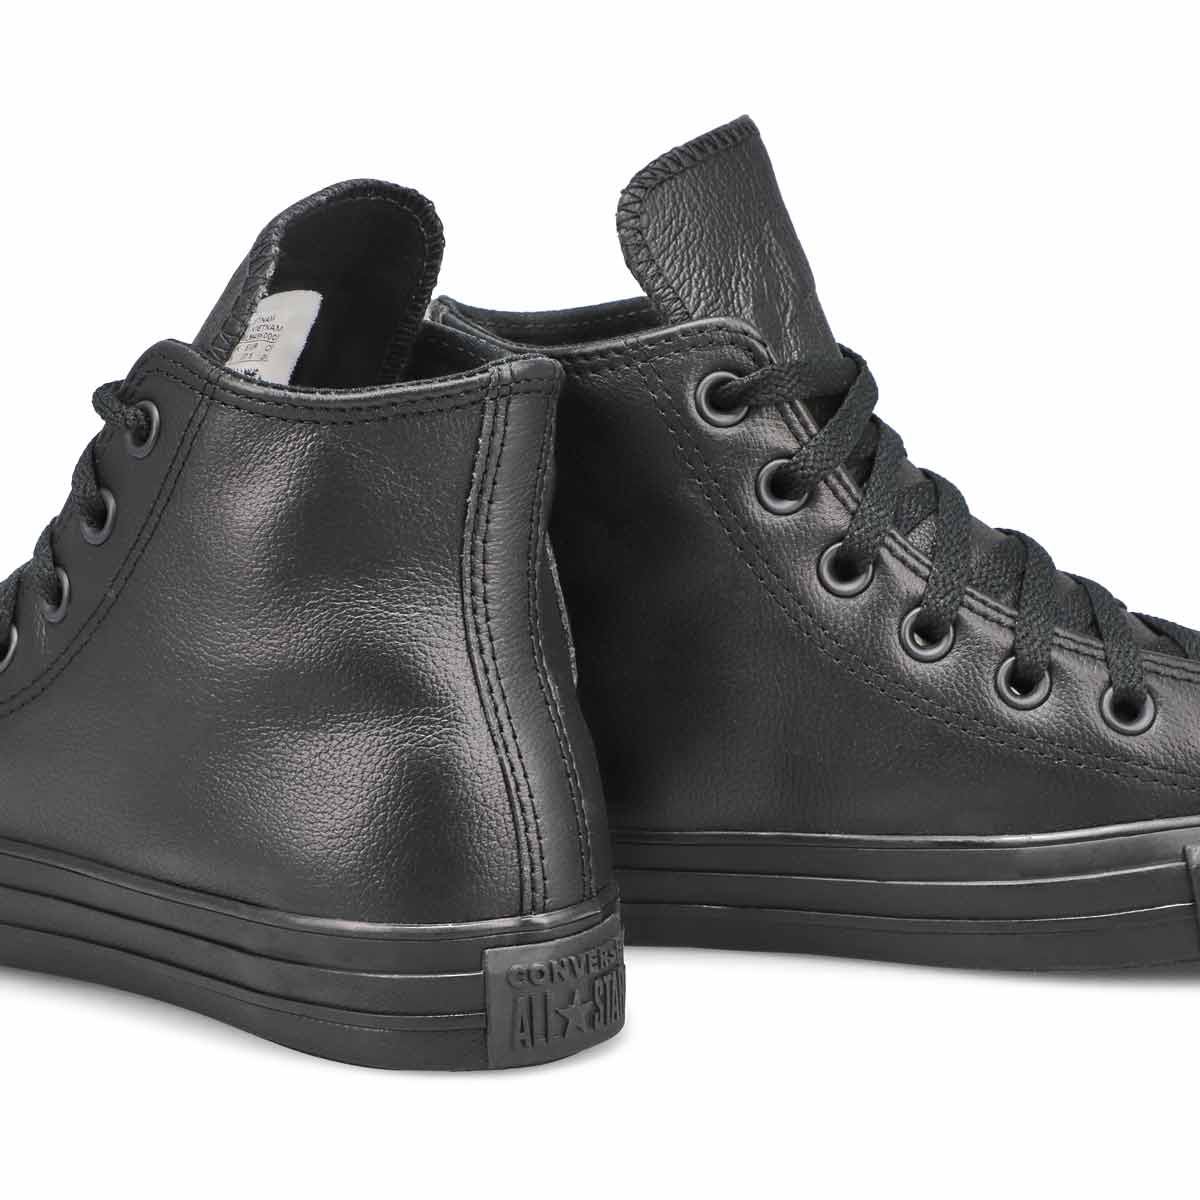 Espad CT All Star Leather, noir mono, fe